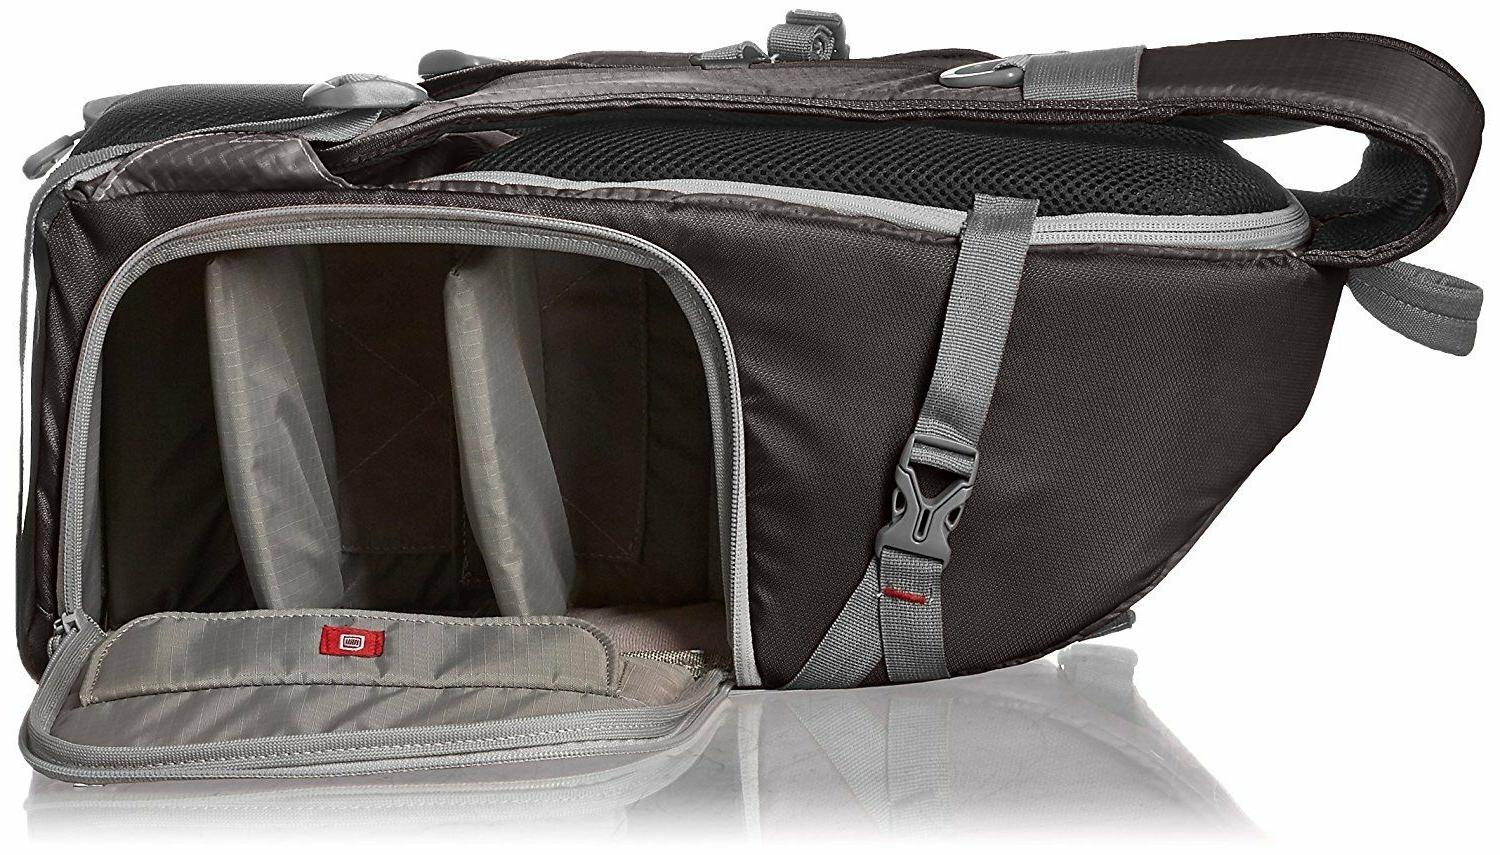 AmazonBasics SLR/DSLR Bag